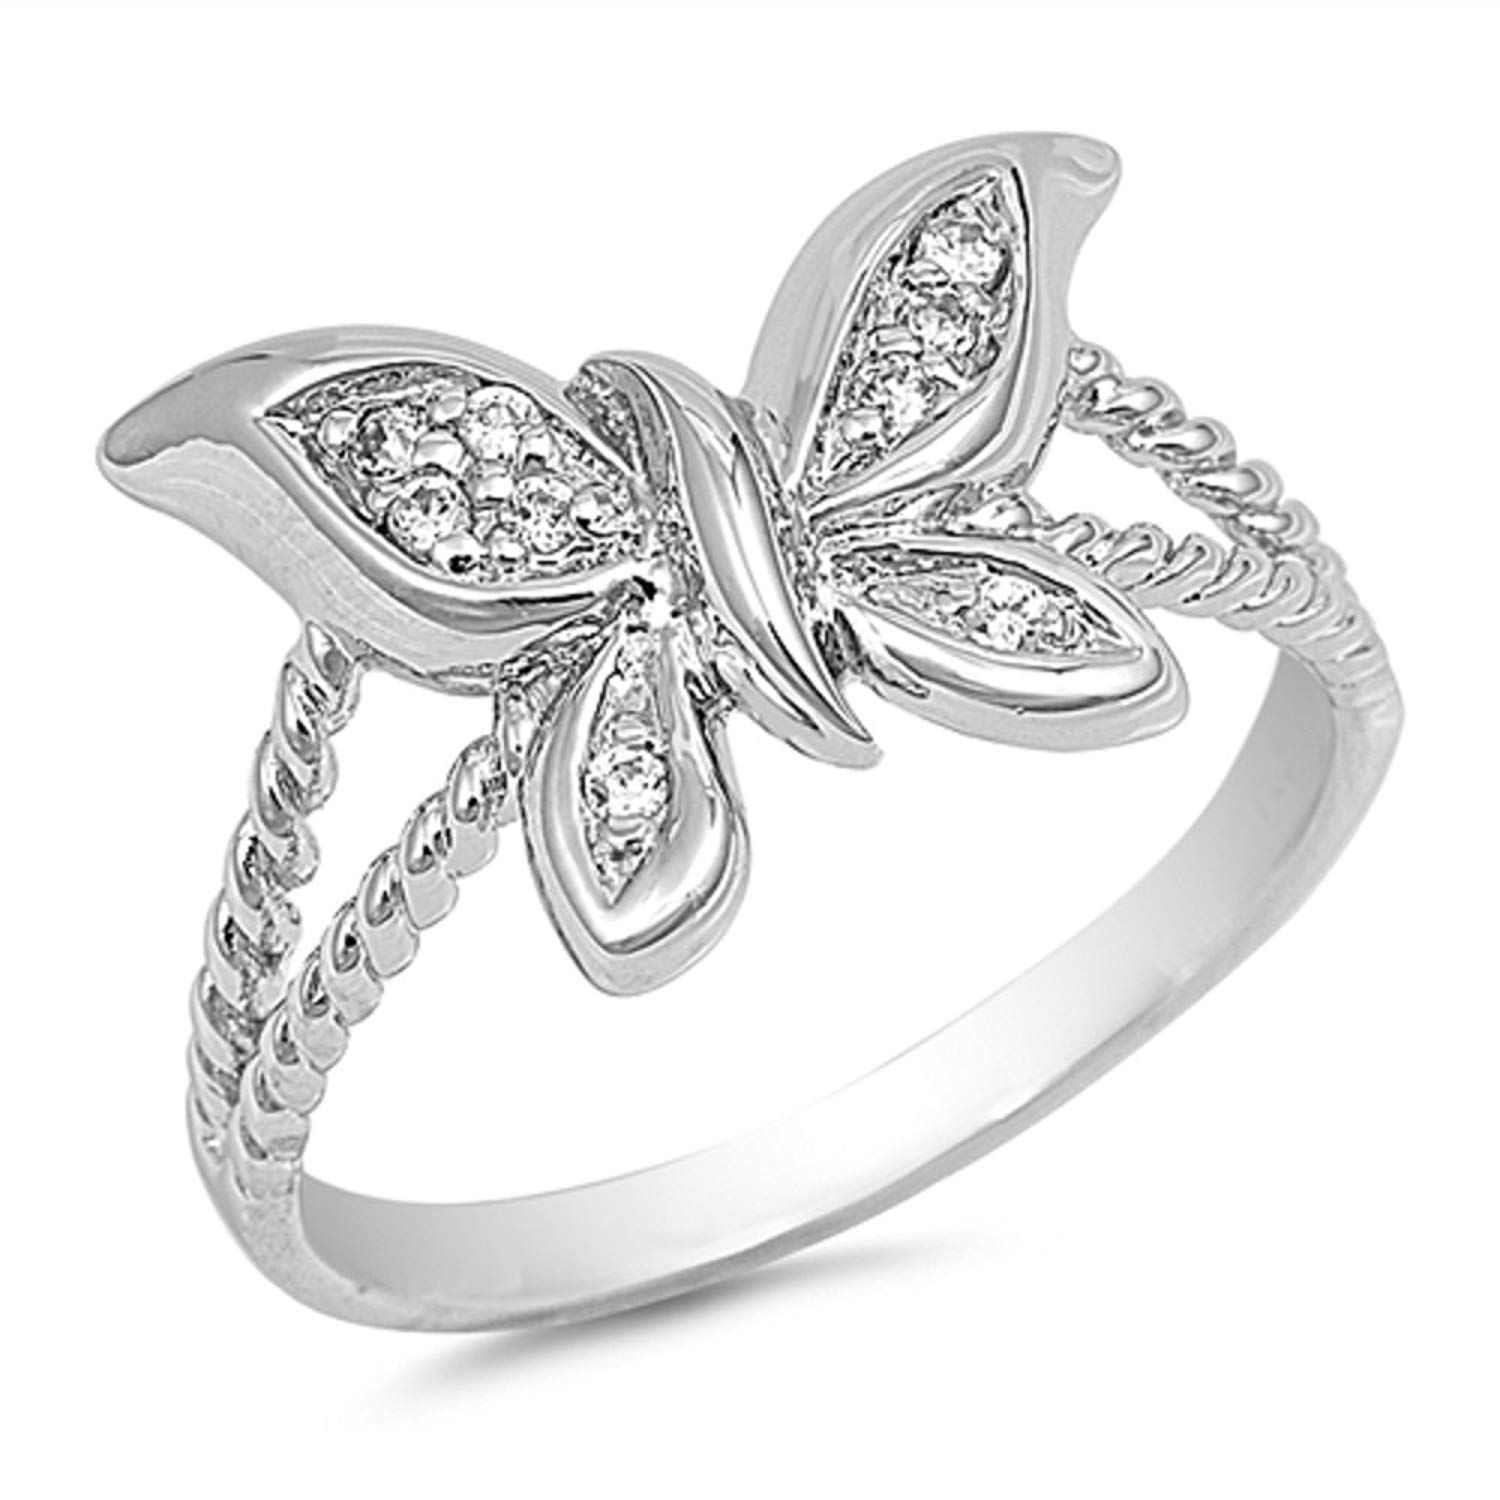 CloseoutWarehouse Flower Adorned Cubic Zirconia Ring Sterling Silver 925